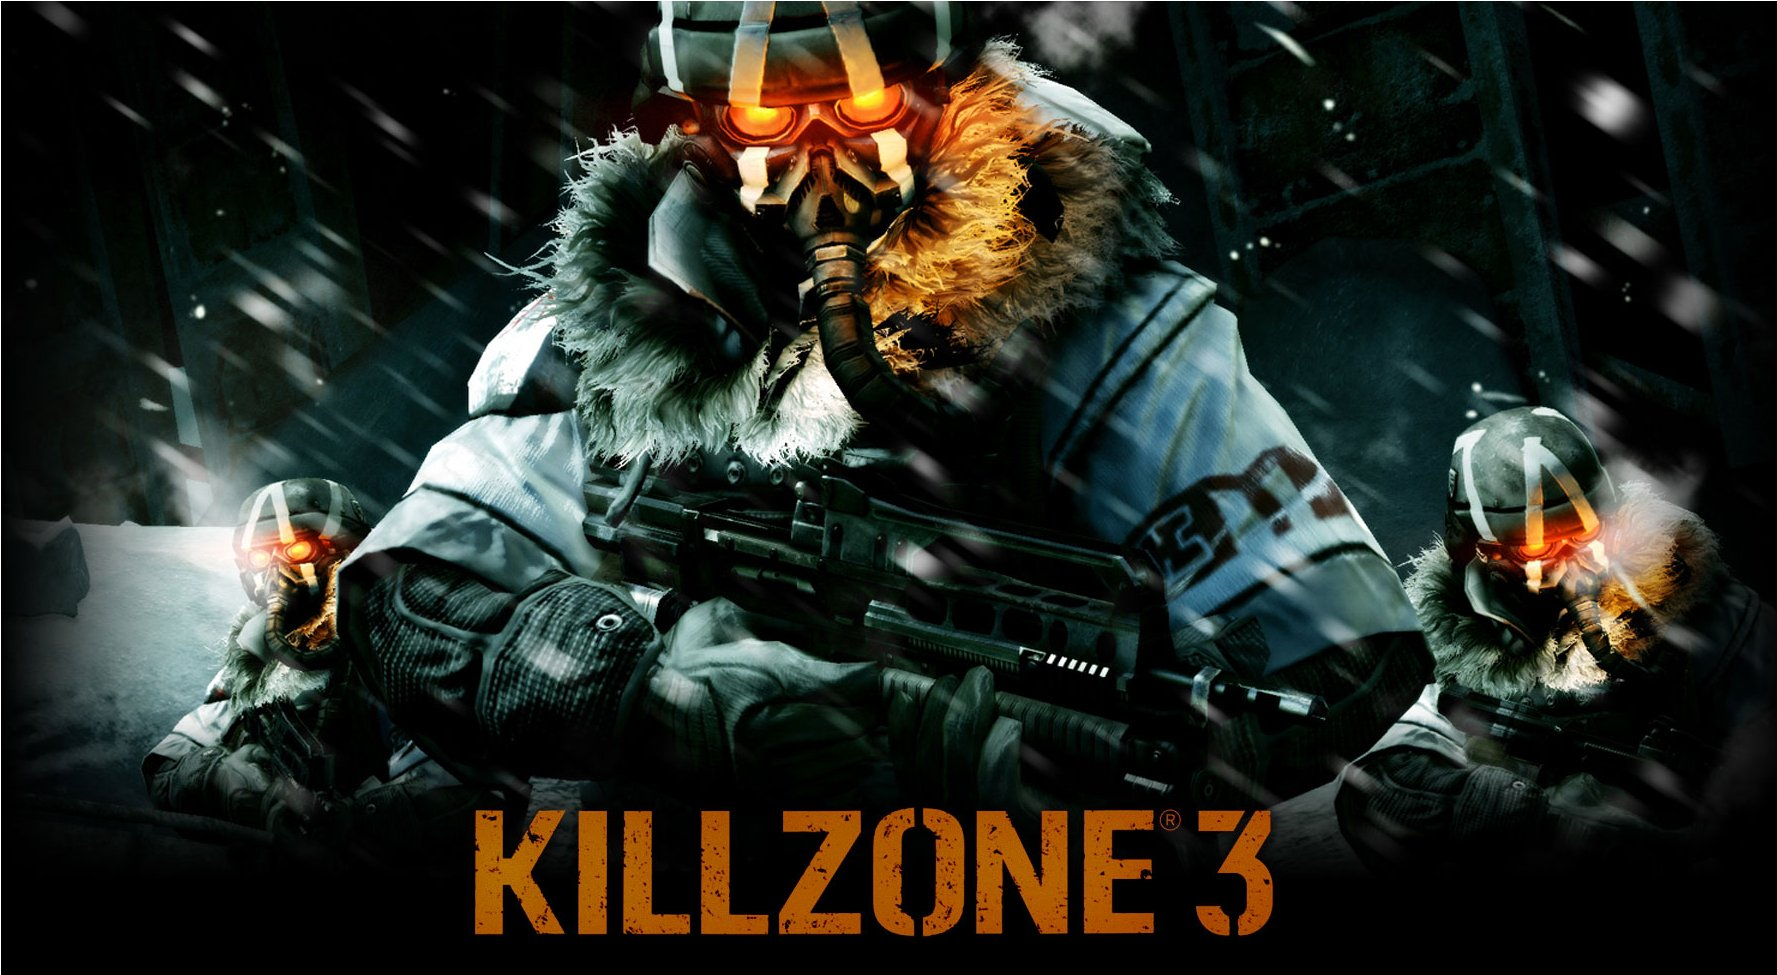 Trophe Killzone 3